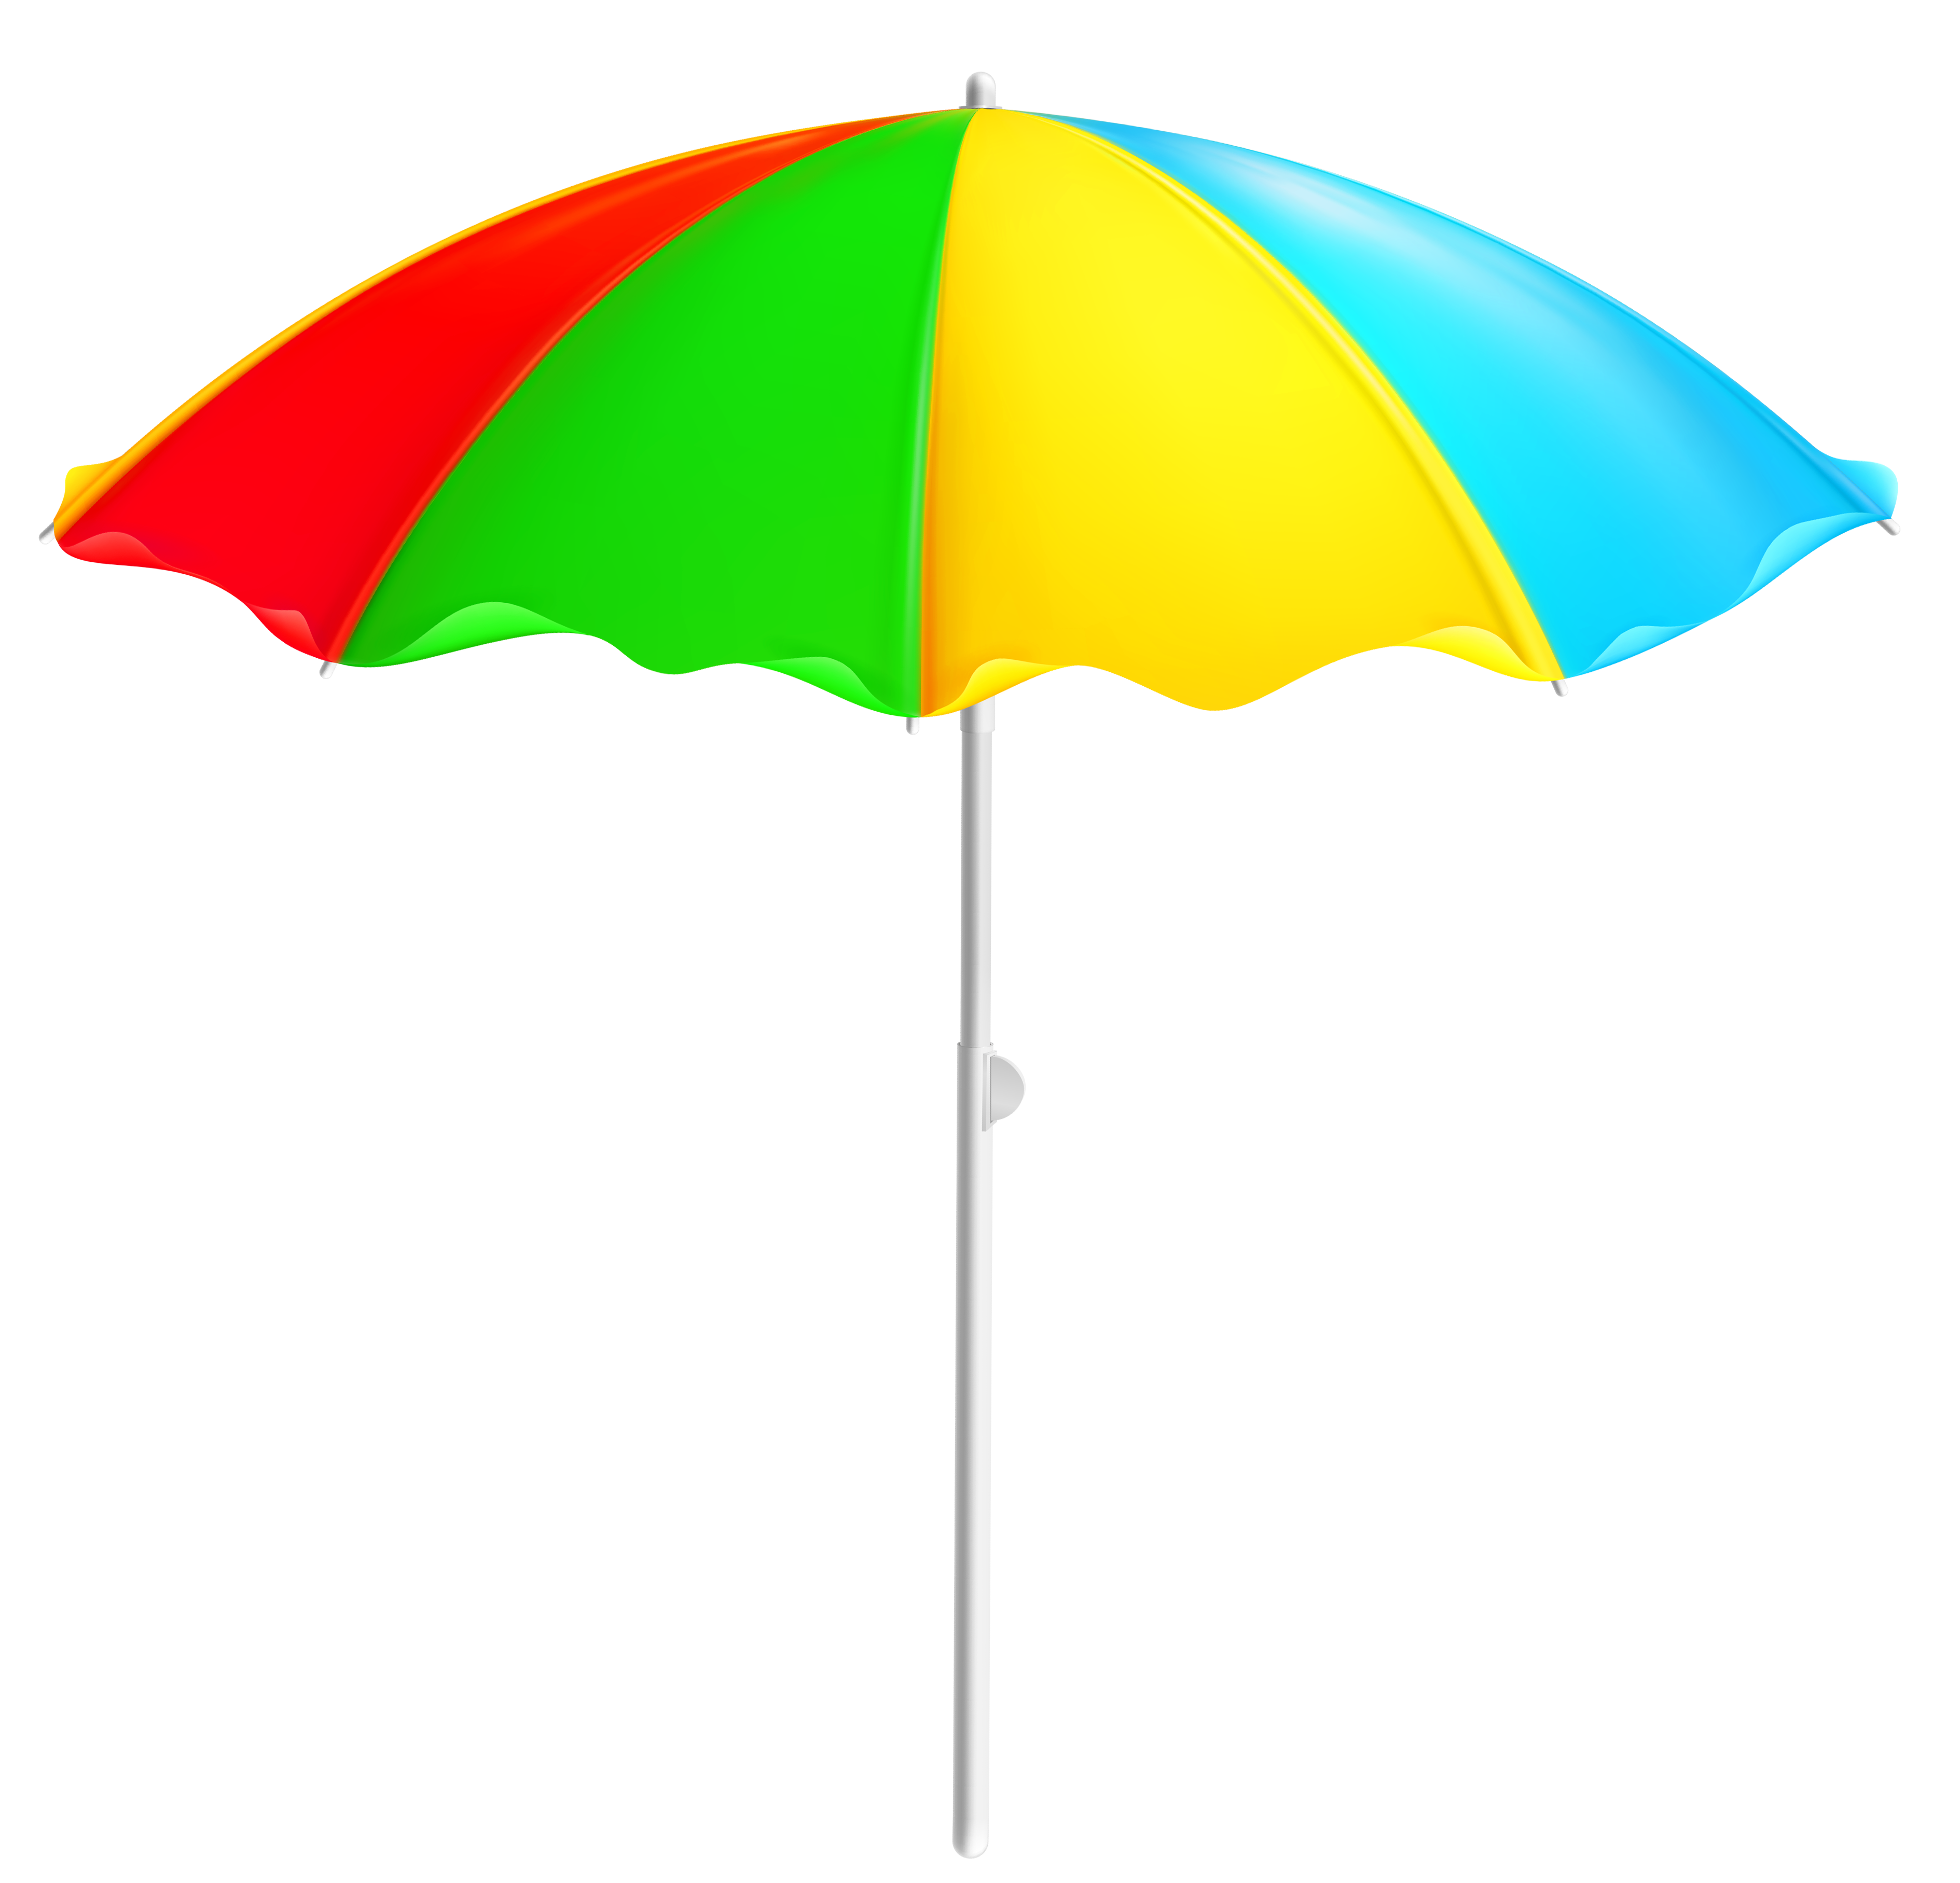 3778x3630 Colorful Beach Umbrella Png Clipartu200b Gallery Yopriceville